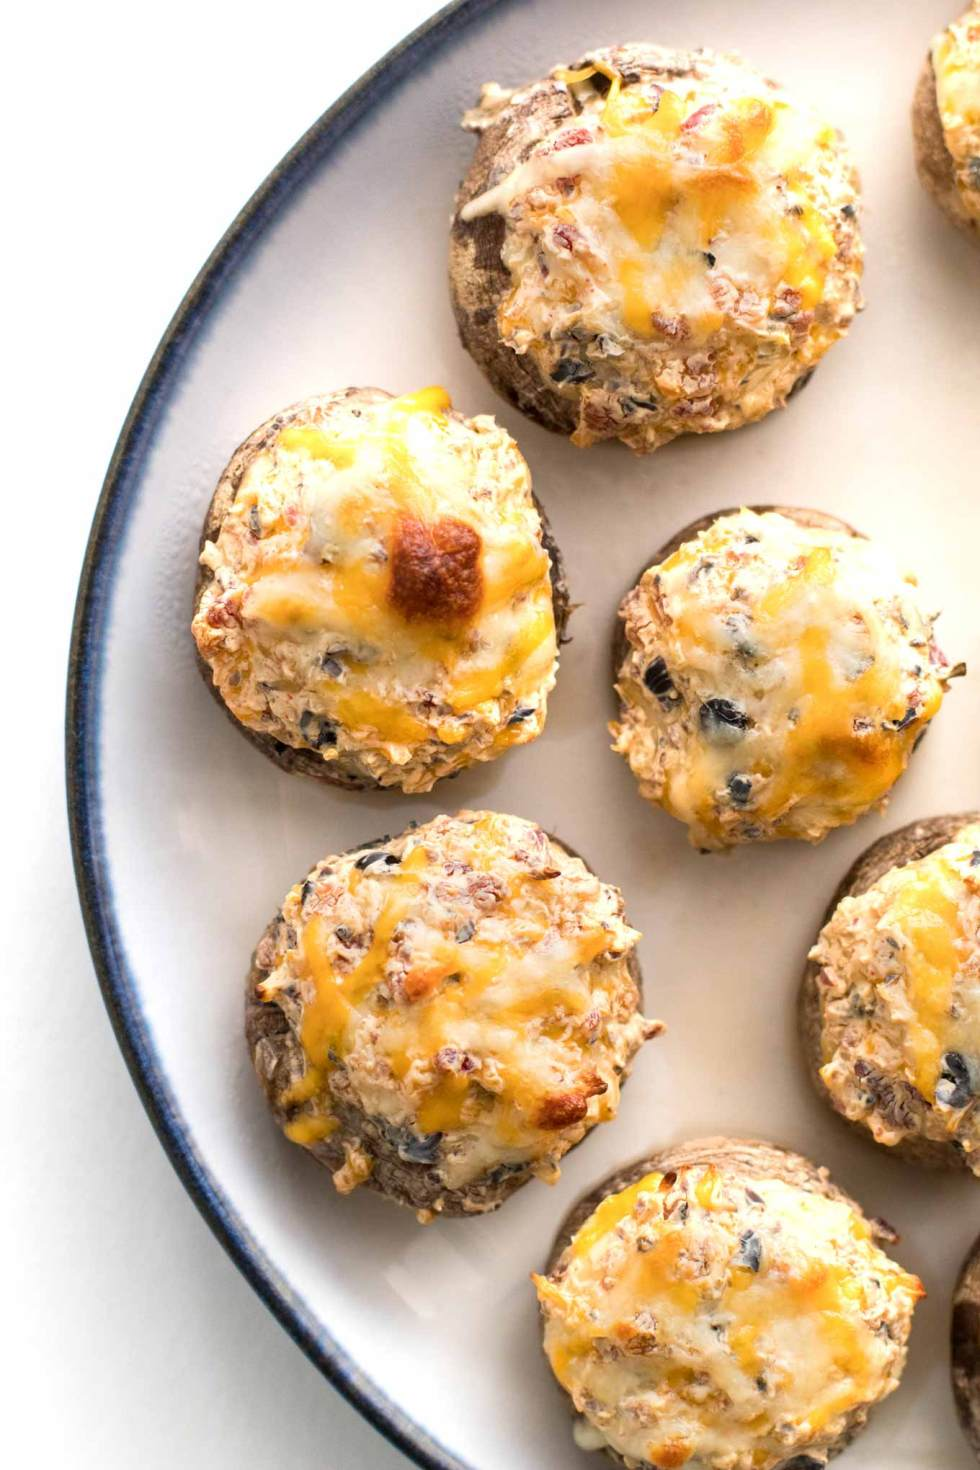 Overhead photo of stuffed mushrooms with browned cheese on top.